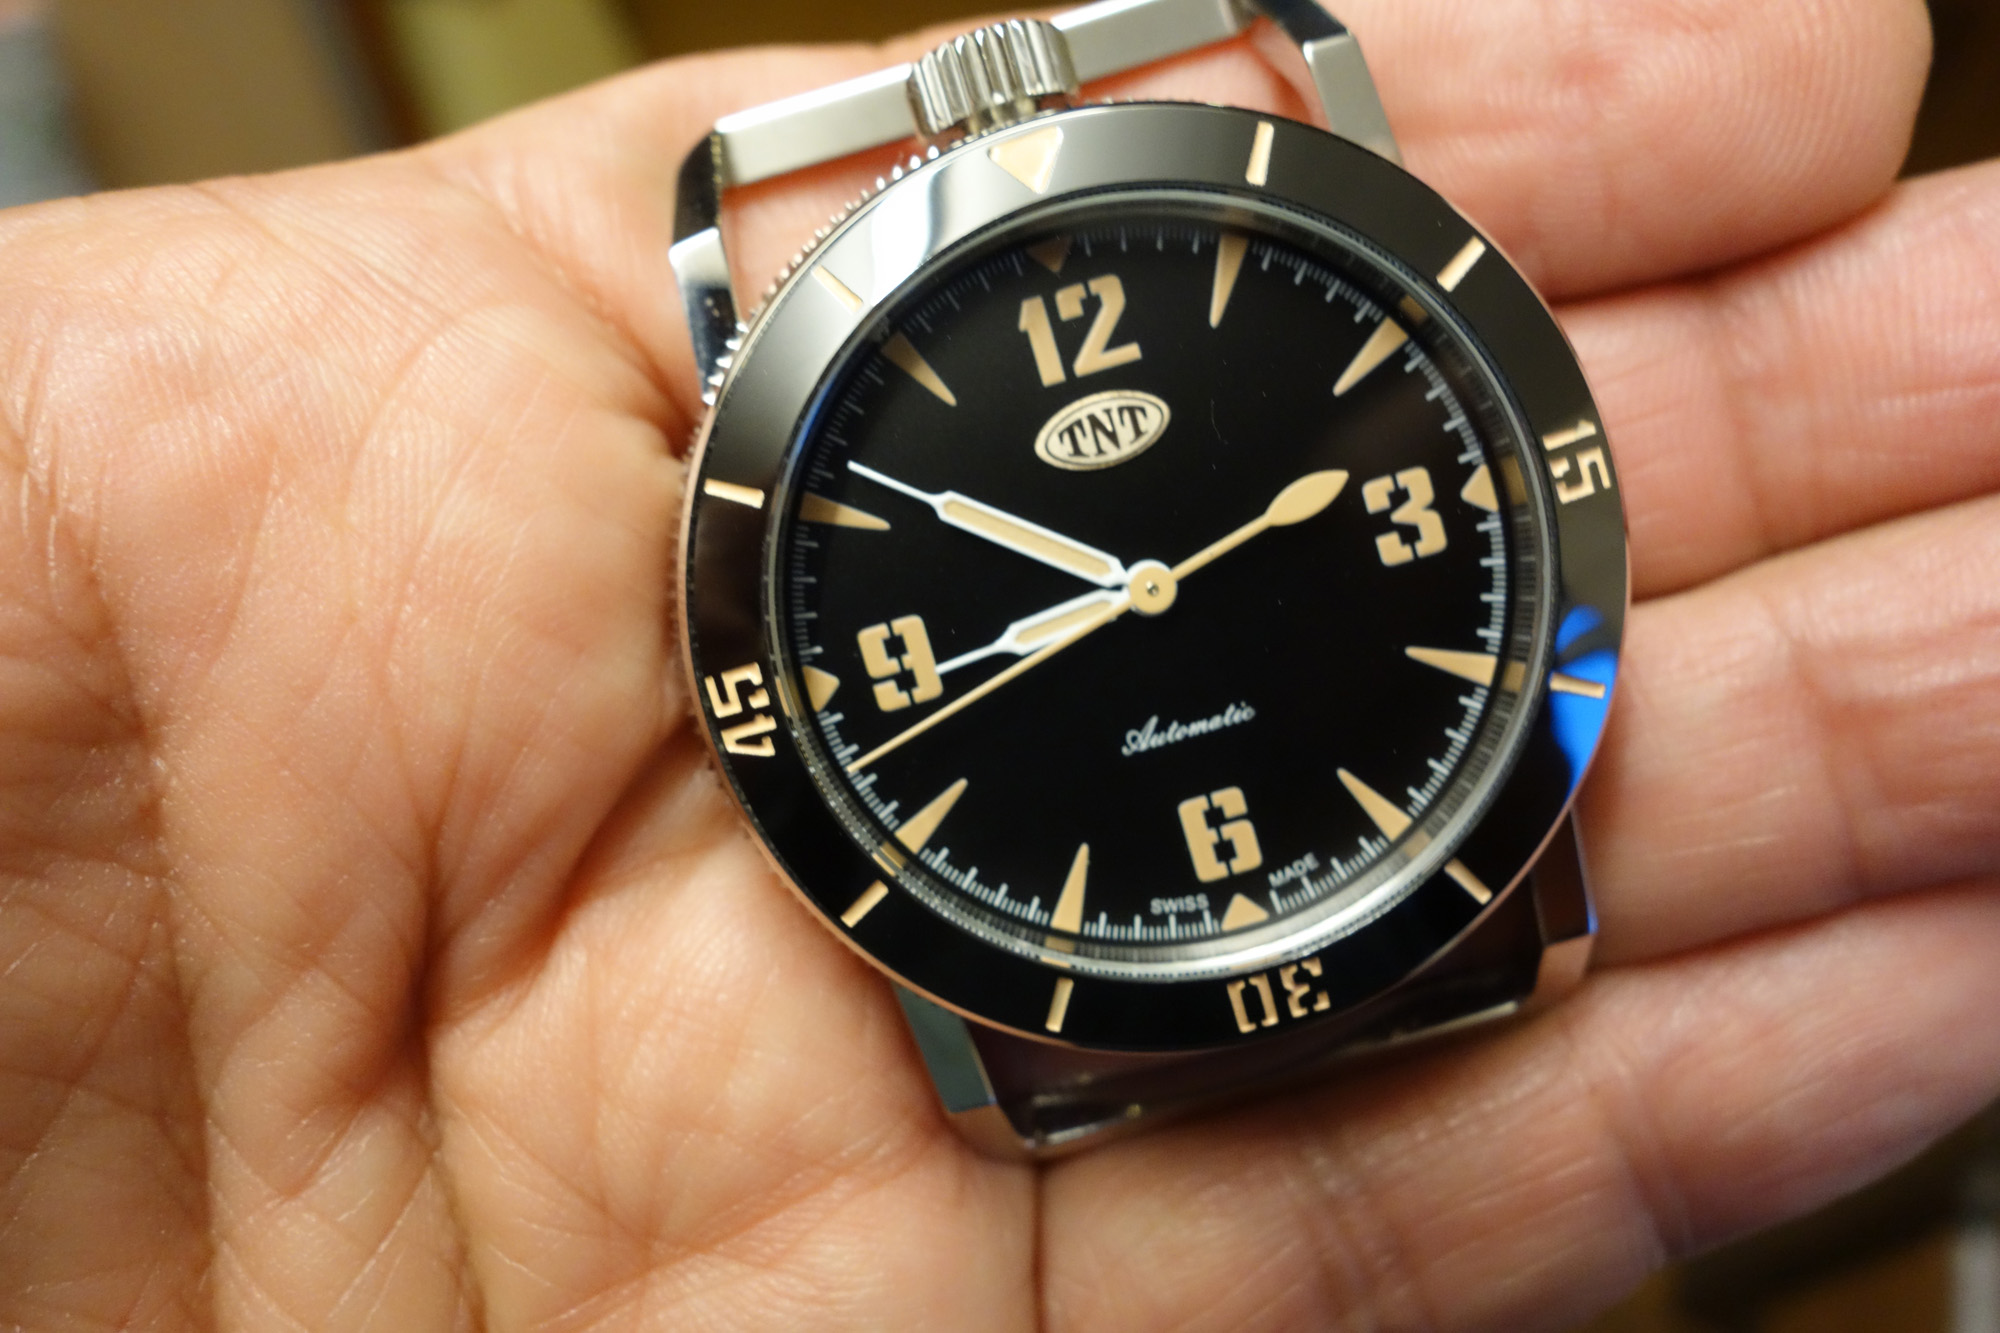 The TNT Challenger 1 watch